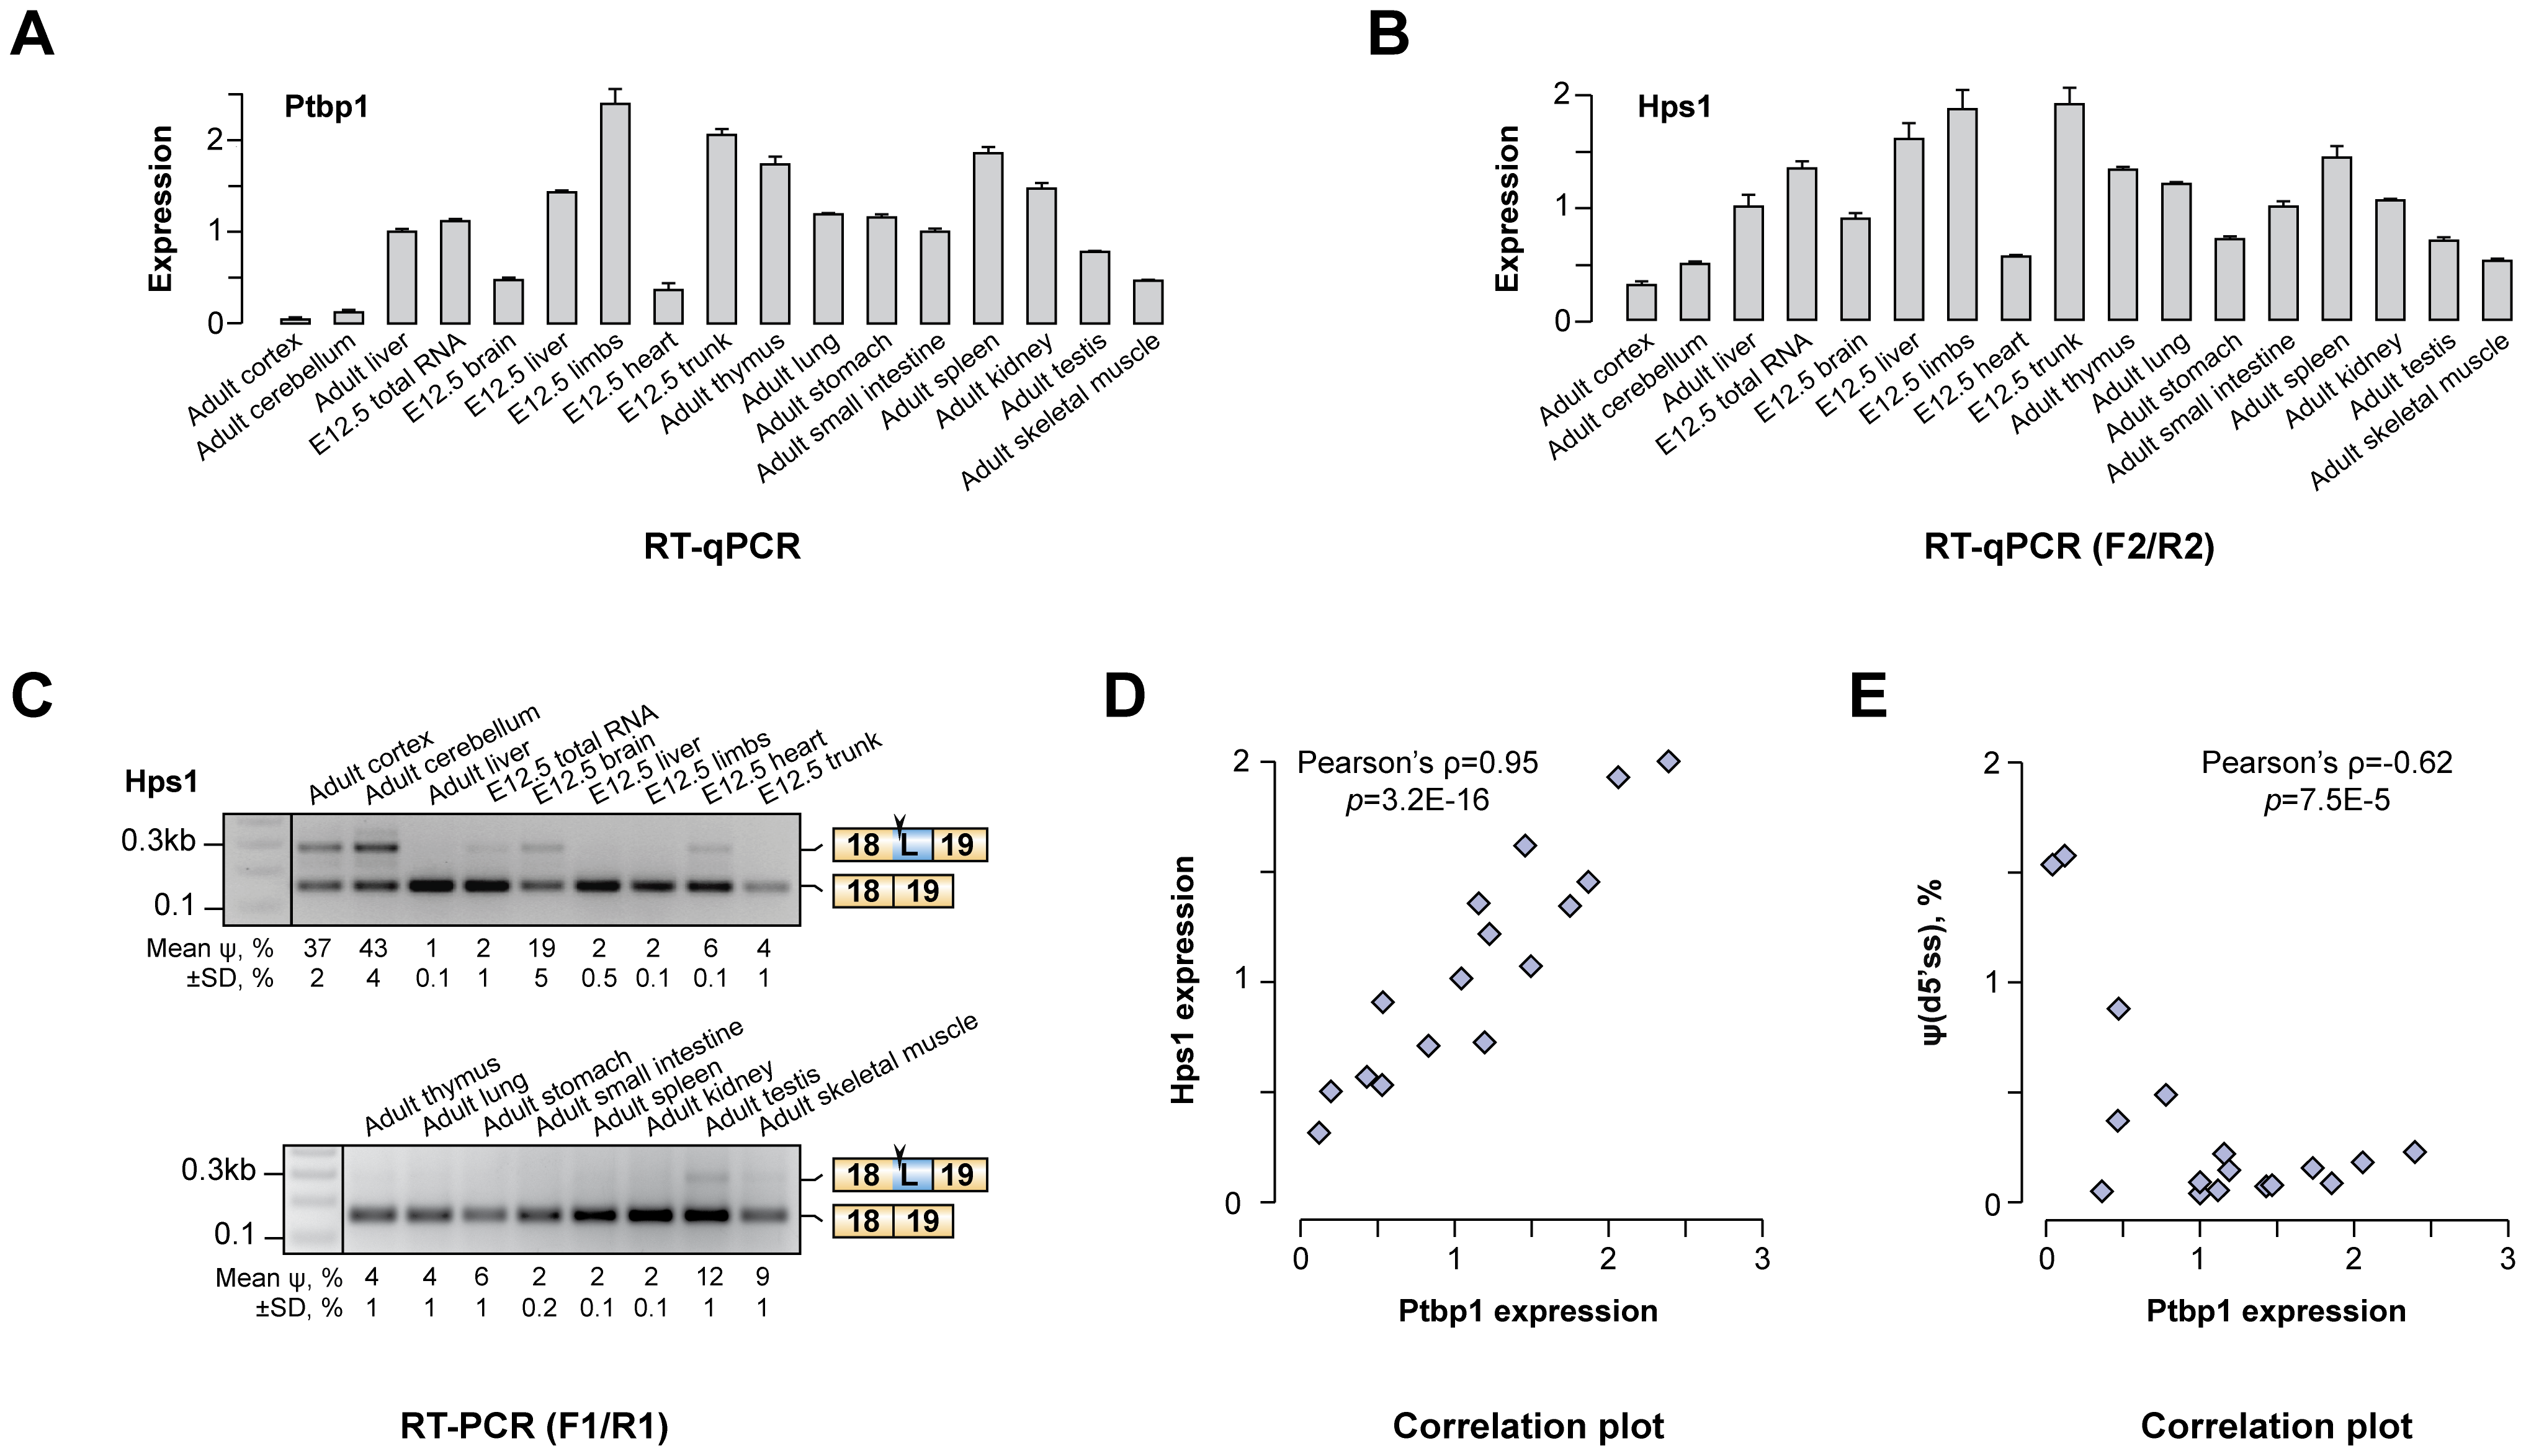 Hps1 is co-expressed with Ptbp1 <i>in vivo</i>.